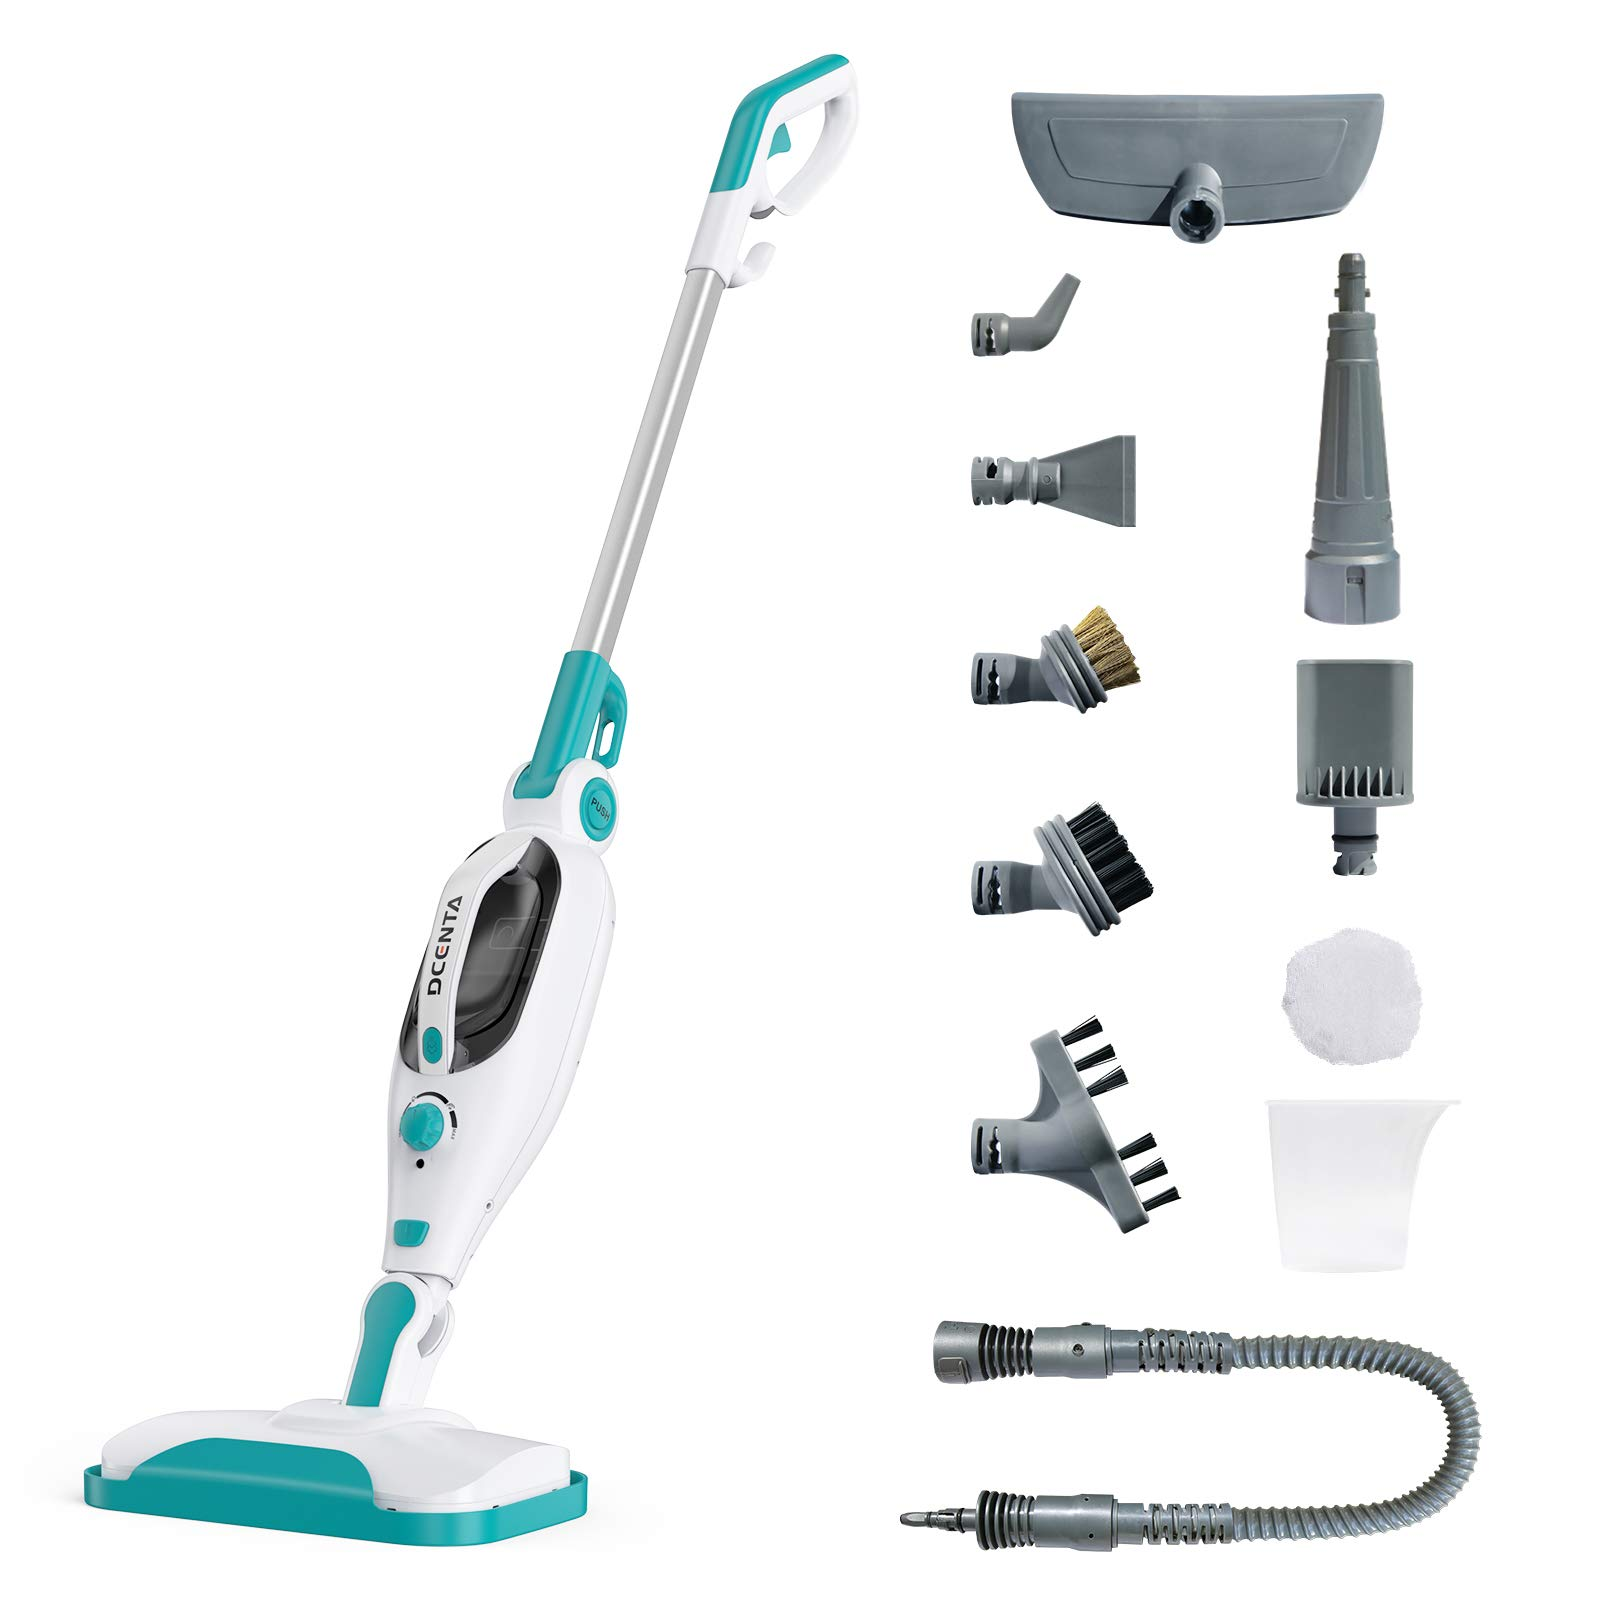 Dcenta 12 In 1 Multifunction Steam Mop 1500w Power Handheld Upright Floor Steam Cleaner For Floor Carpets Laminate Convenient Detachable Handheld Steam Cleaner Removes 99 9 Of Bacteria Amazon Co Uk Kitchen Home